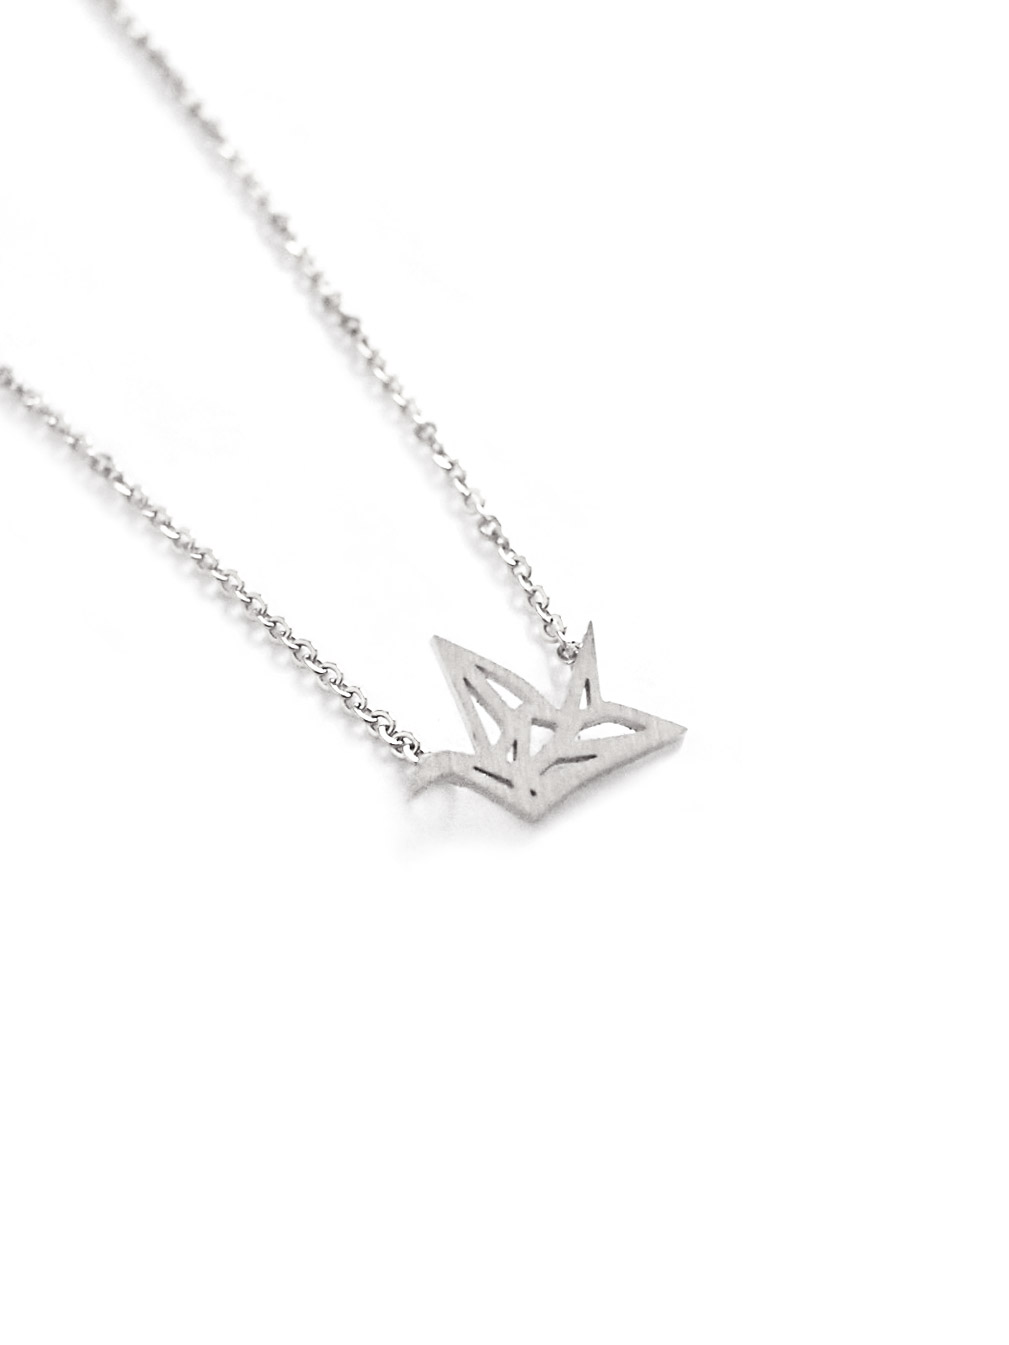 (Back in Stock) (Stainless Steel) Mini Origami Crane Necklace in Silver | Arva.co - photo#11